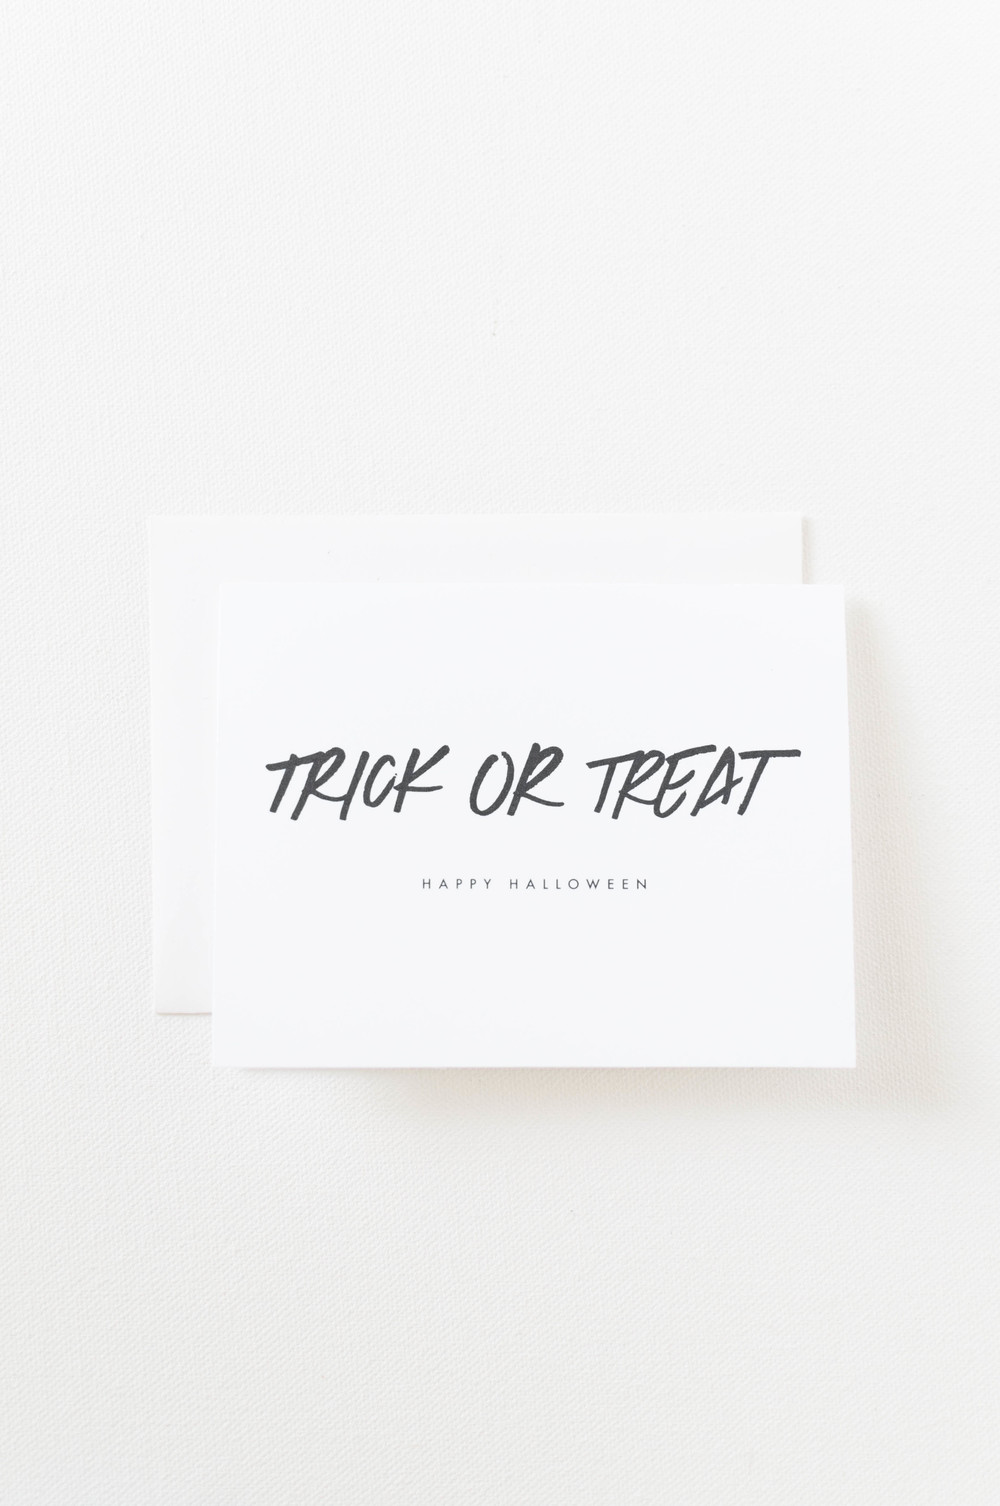 Free Printable Halloween Card.  Click to download.